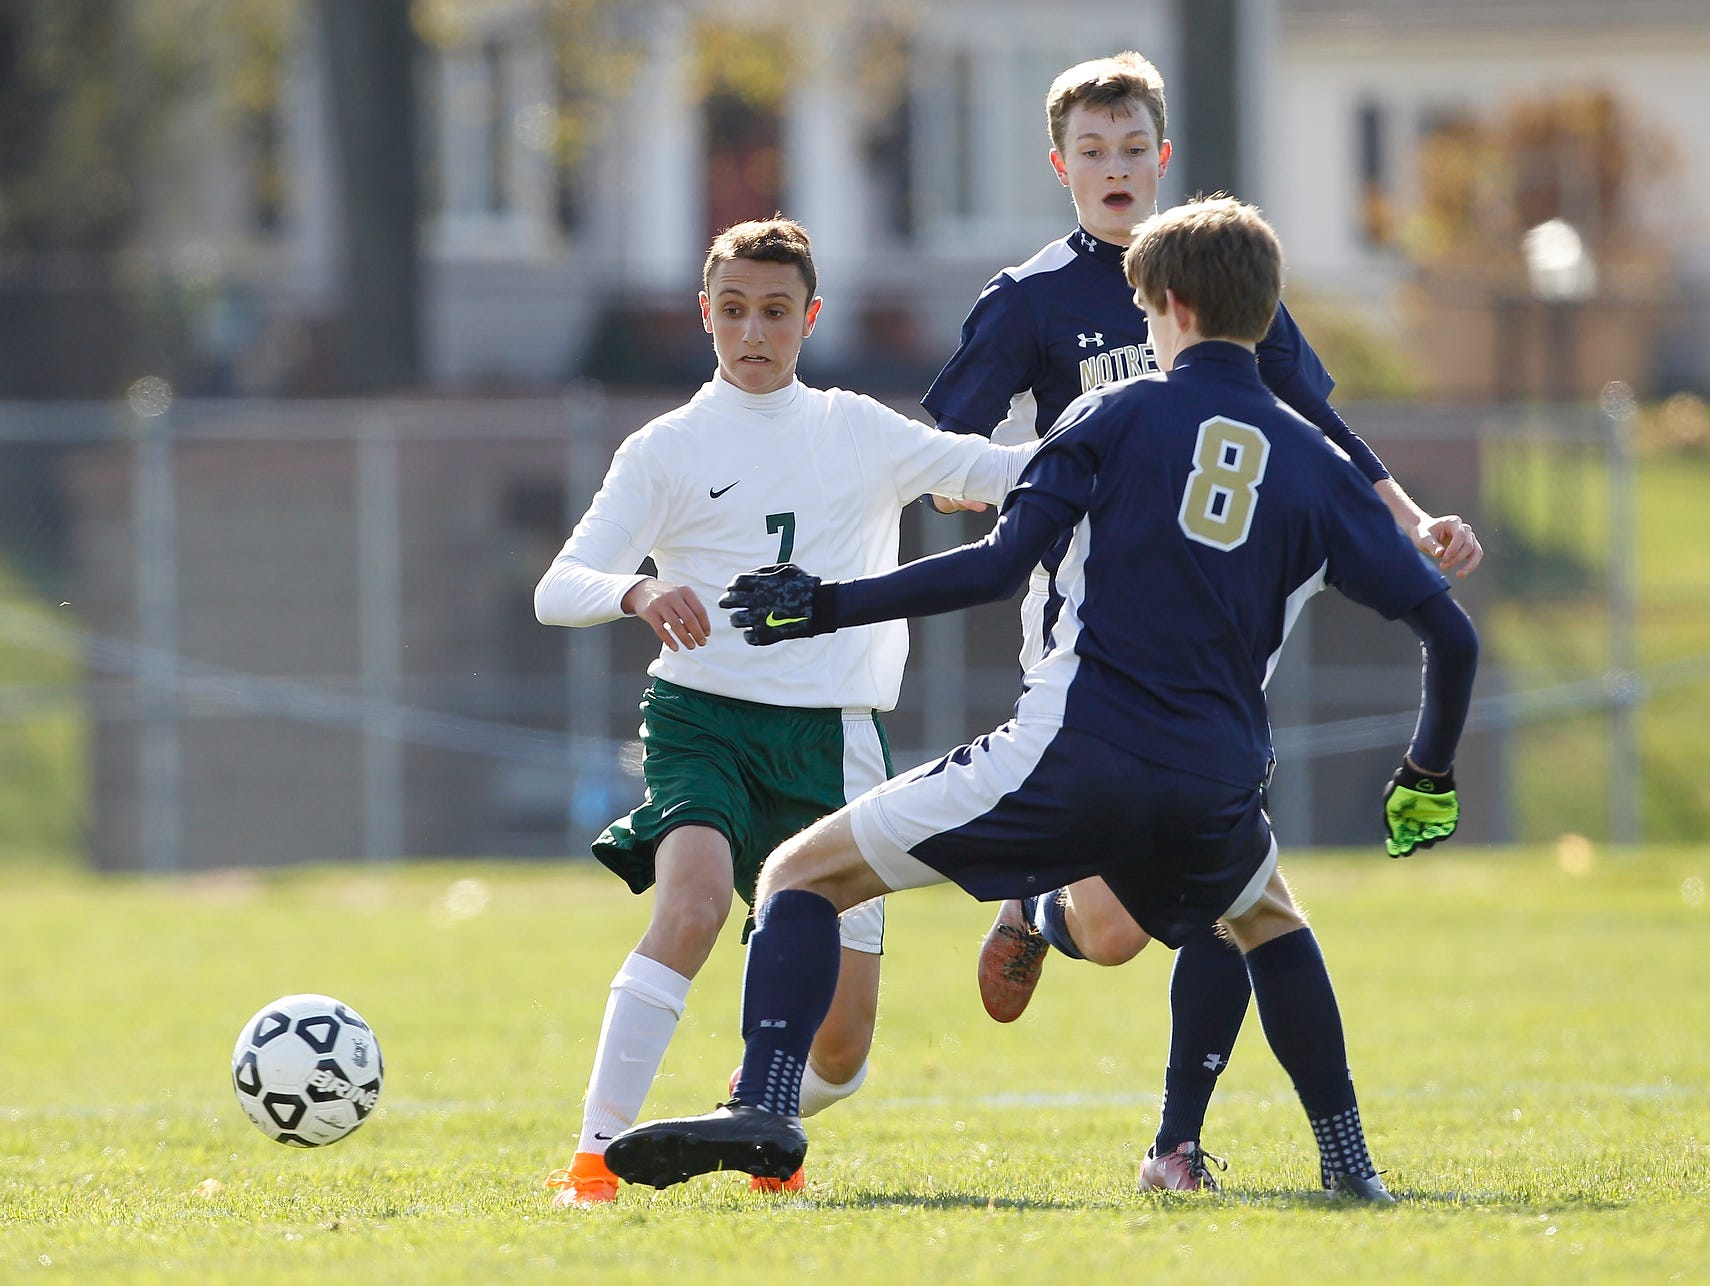 Solomon Schechter's Jonathan Tolchinsky (7) feeds a pass during their 9-1 loss to Notre Dame in the NYSPHSAA boys class C soccer final at Middletown High School on Sunday, Nov. 15, 2015.